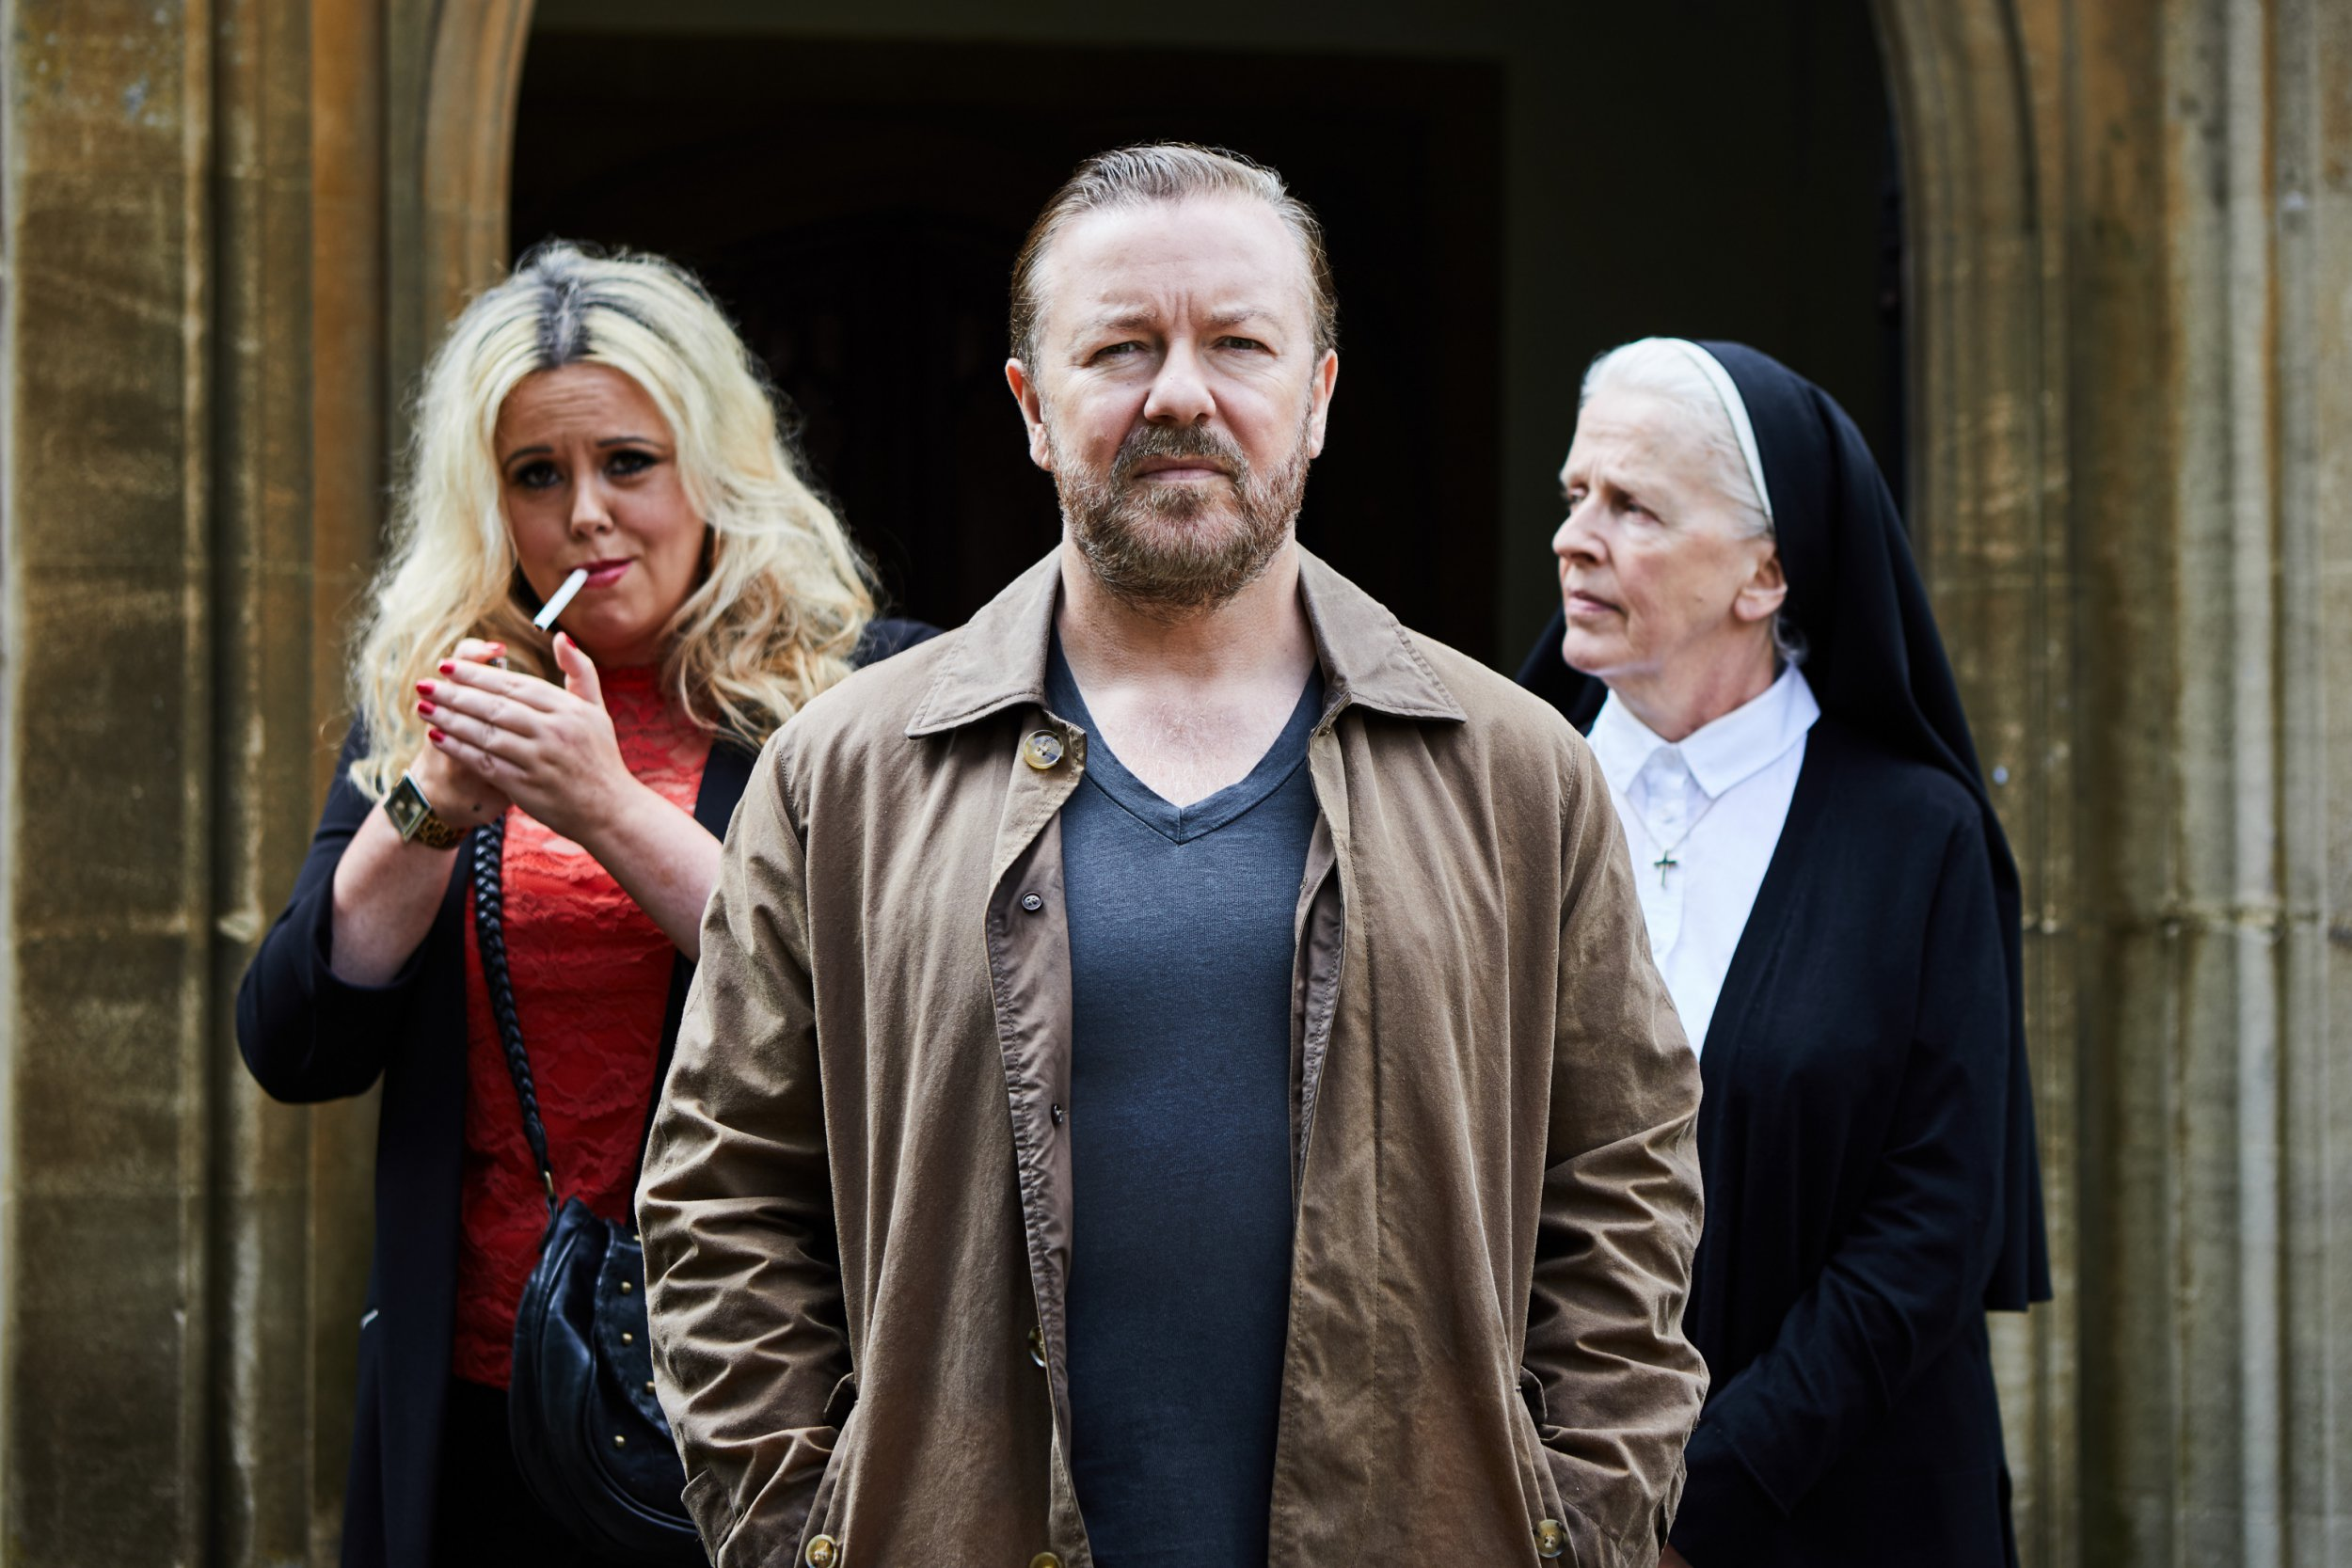 Ricky Gervais' new show After Life is not the depiction of male mental health that TV needs